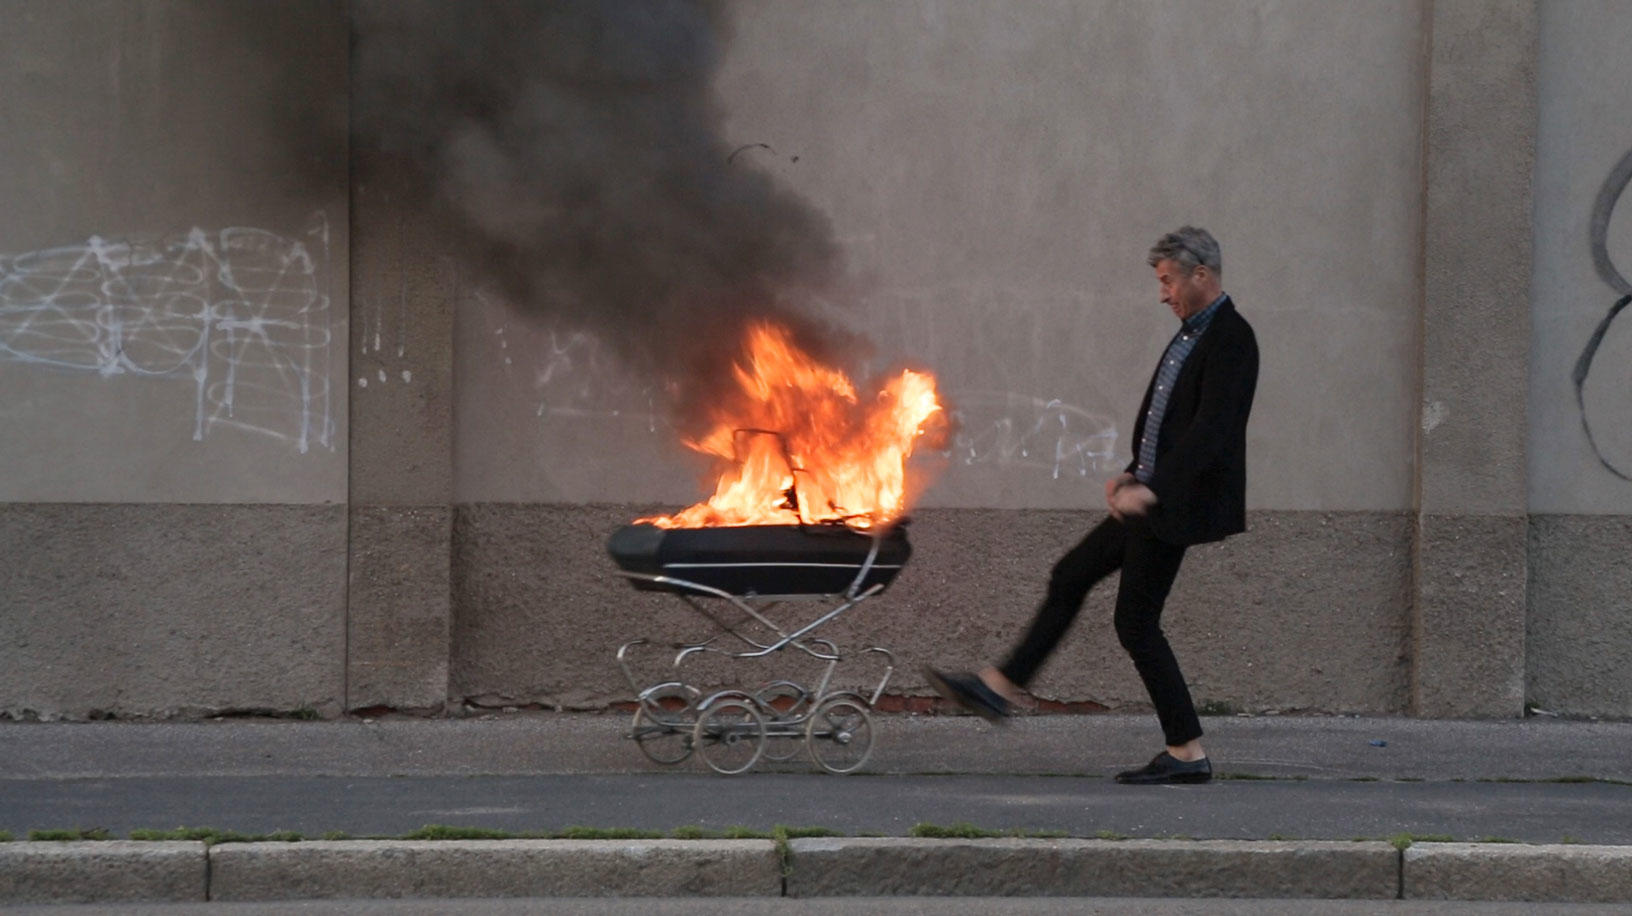 Check out the movie photos of 'Maurizio Cattelan: Be Right Back'